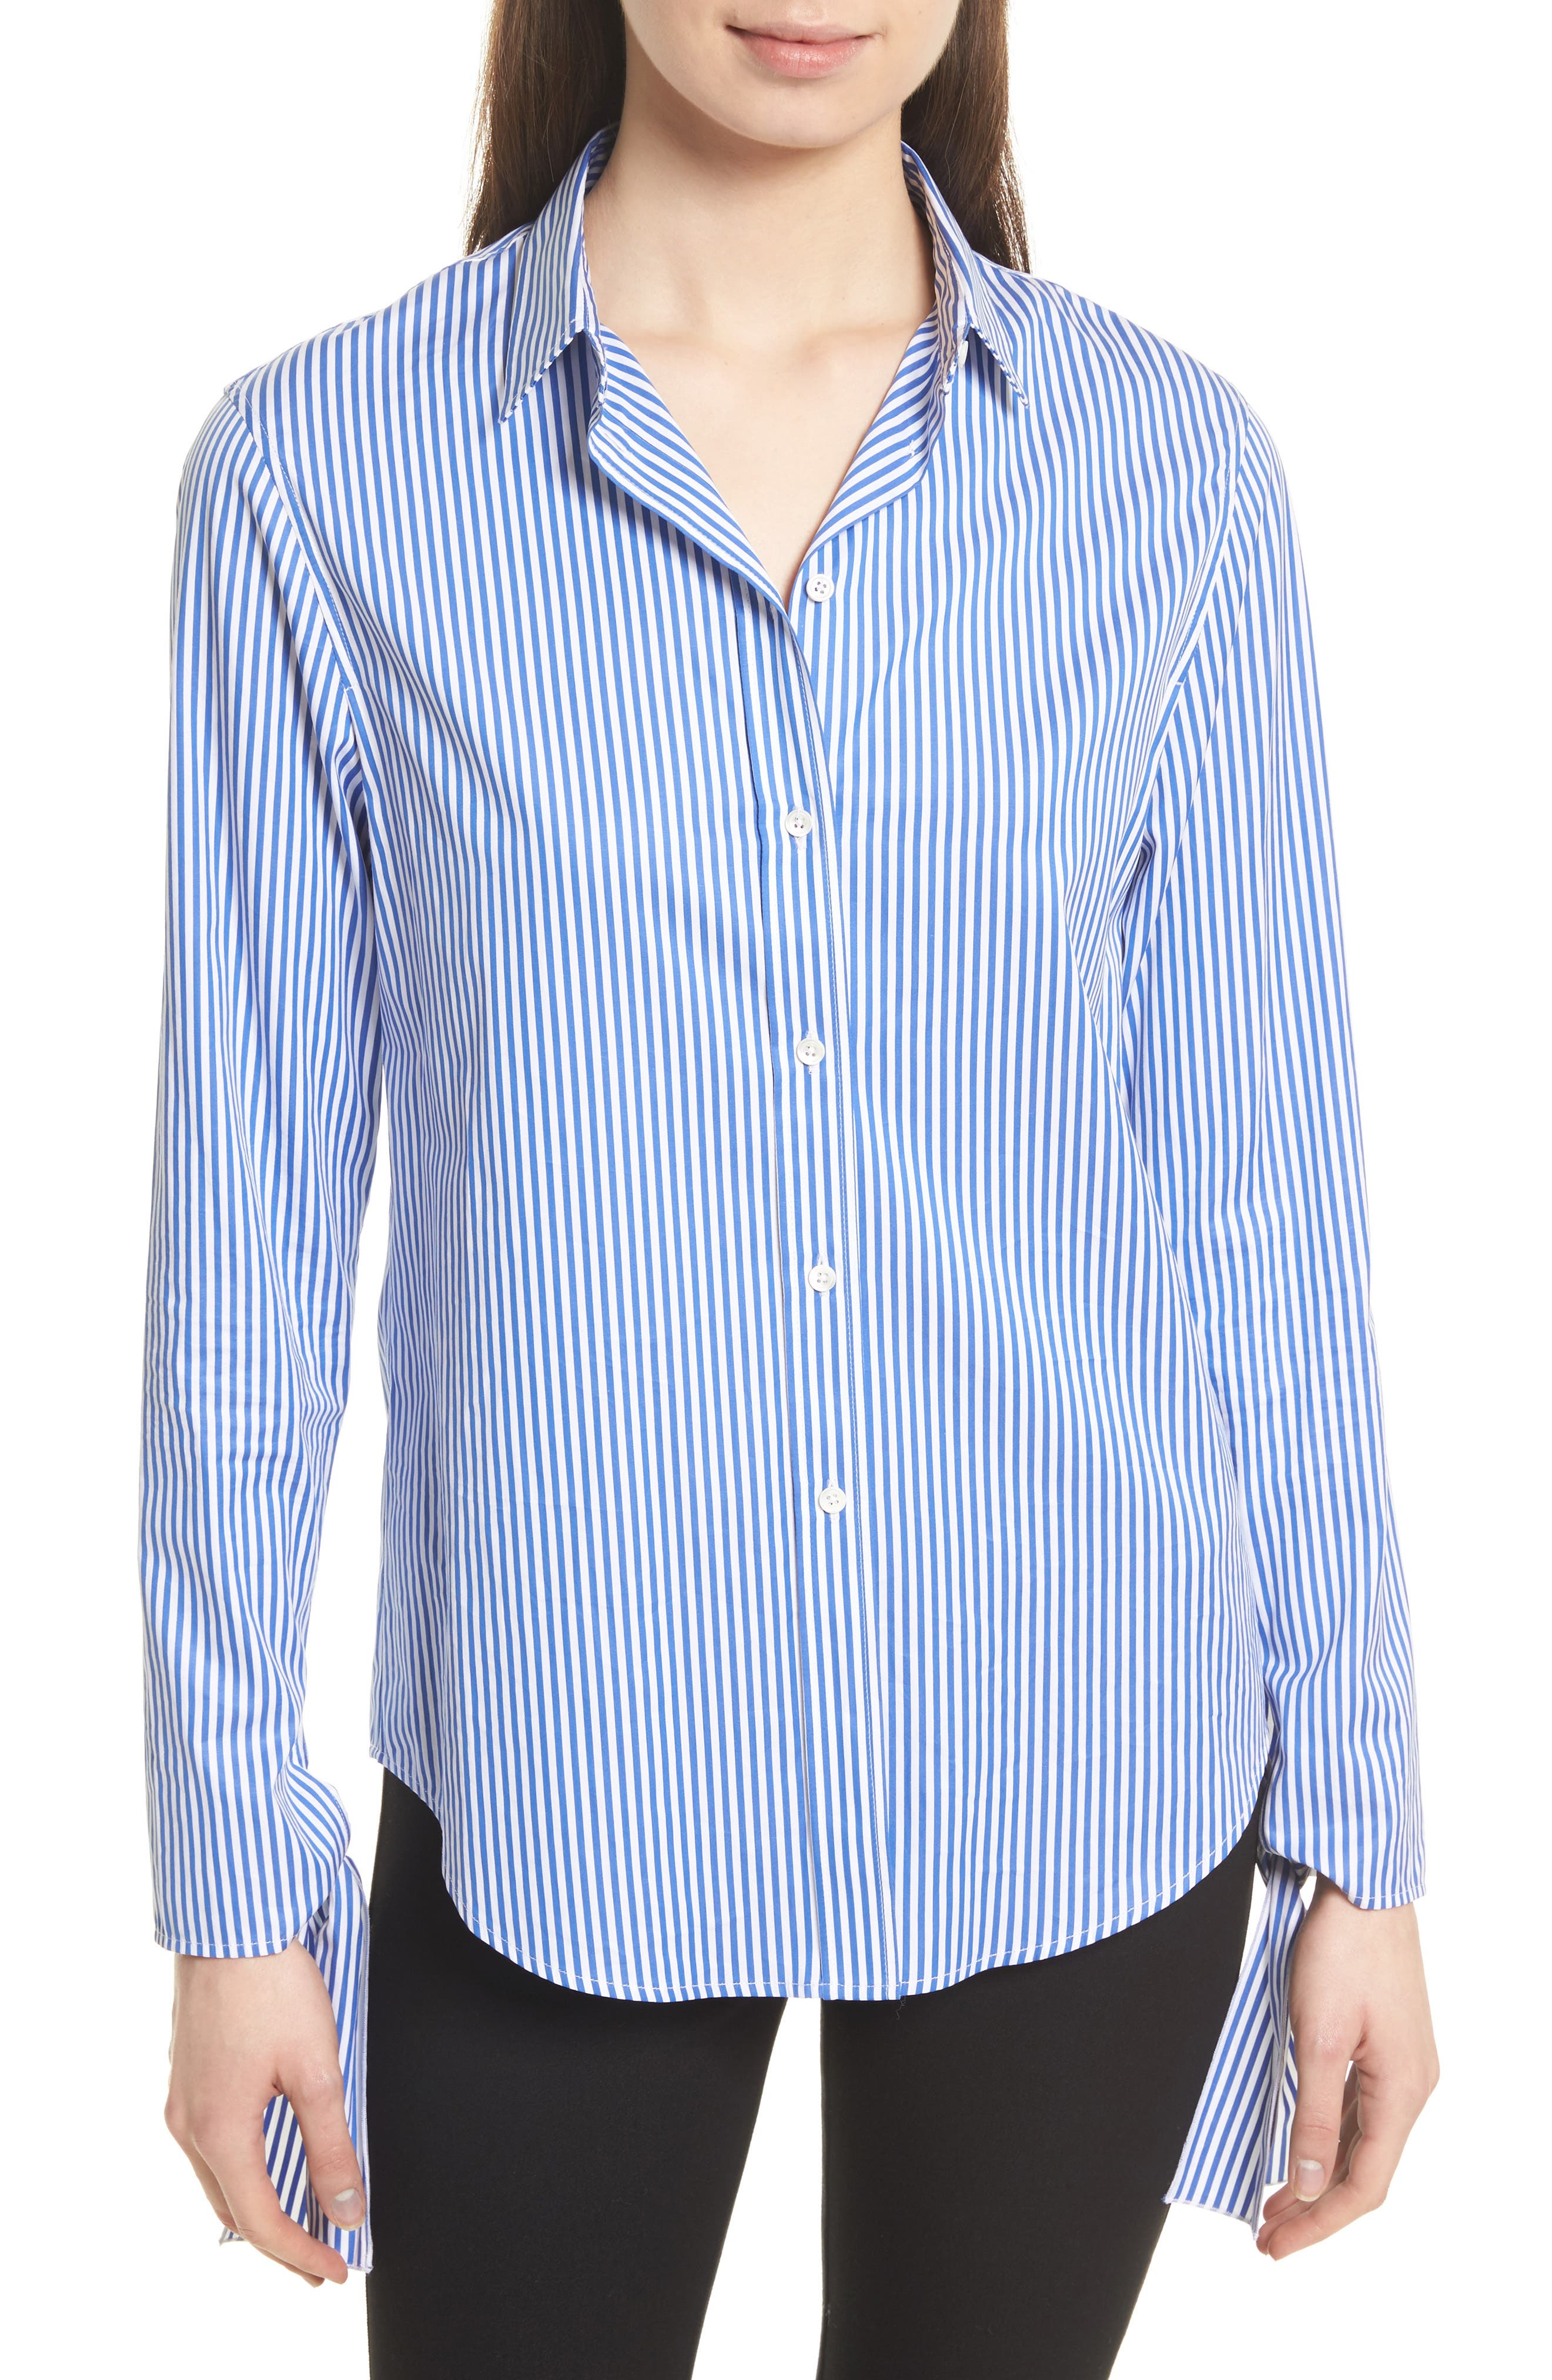 Alternate Image 1 Selected - JOSEPH Thomas Stripe Forever Tie Cuff Shirt